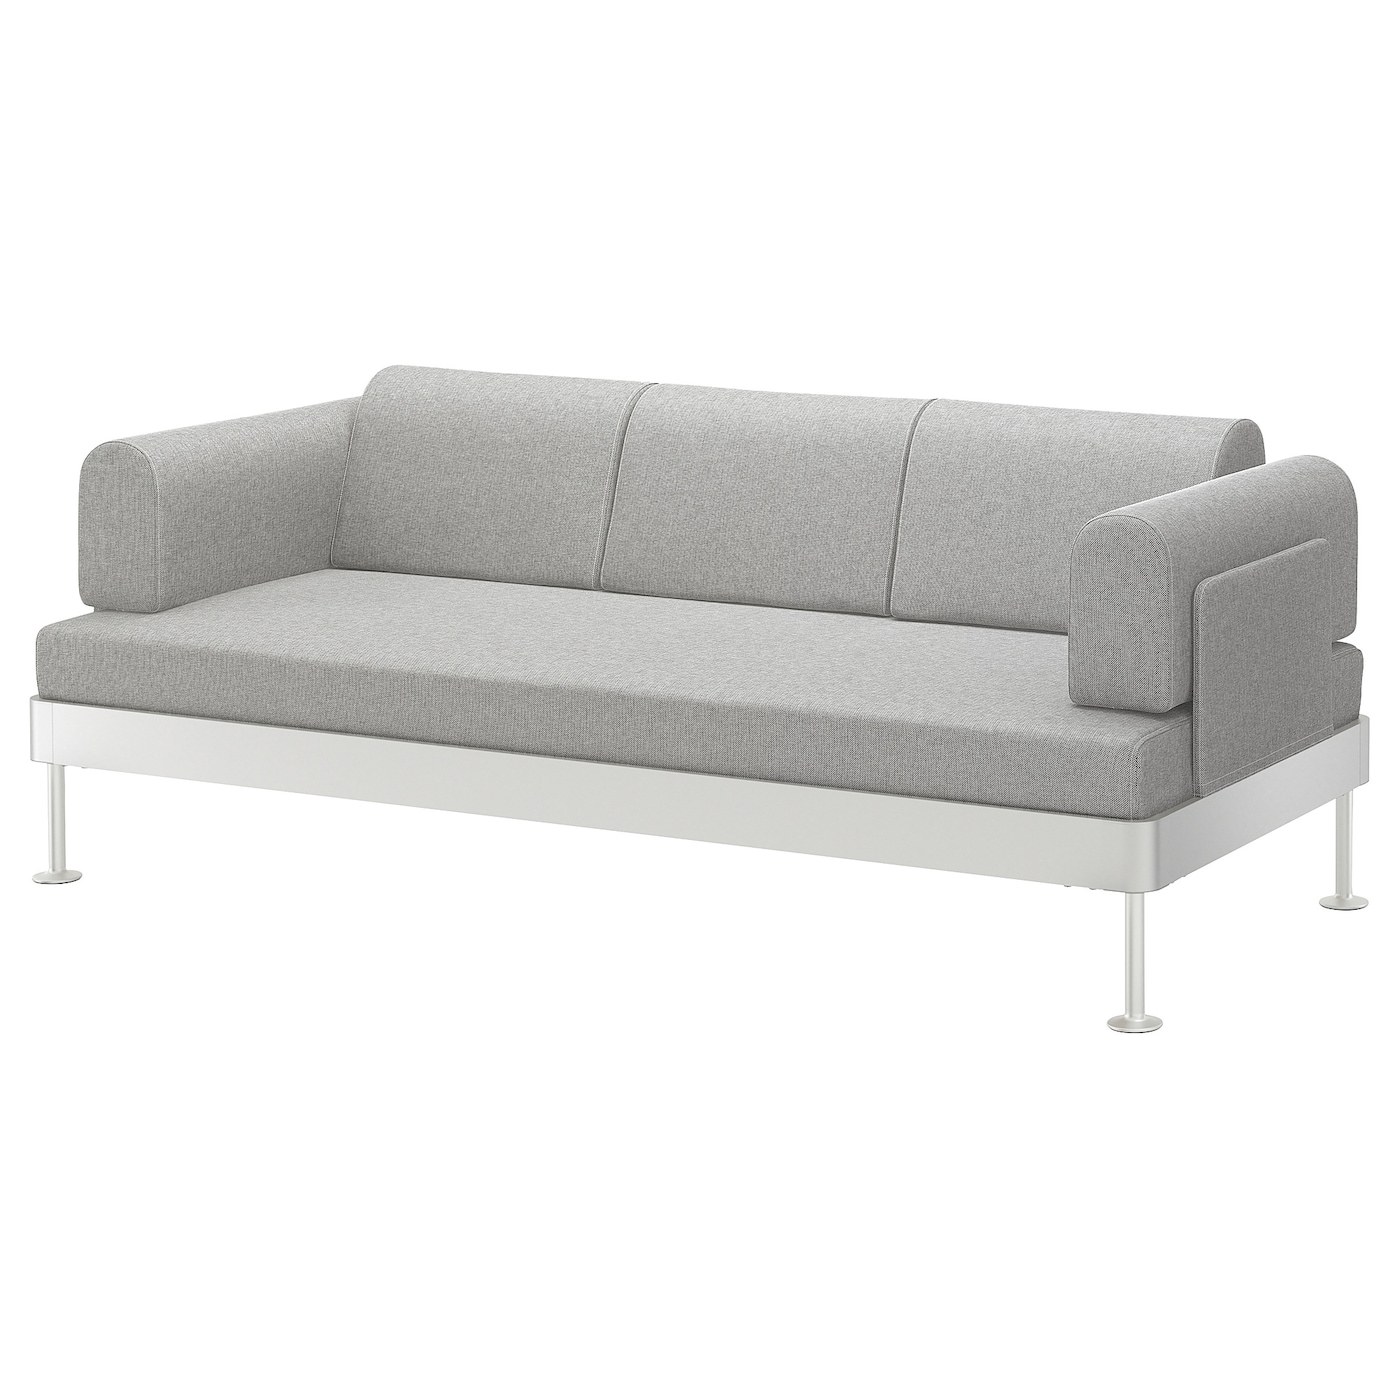 Ikea Delaktig 3 Seat Sofa The Cover Is Easy To Keep Clean As It